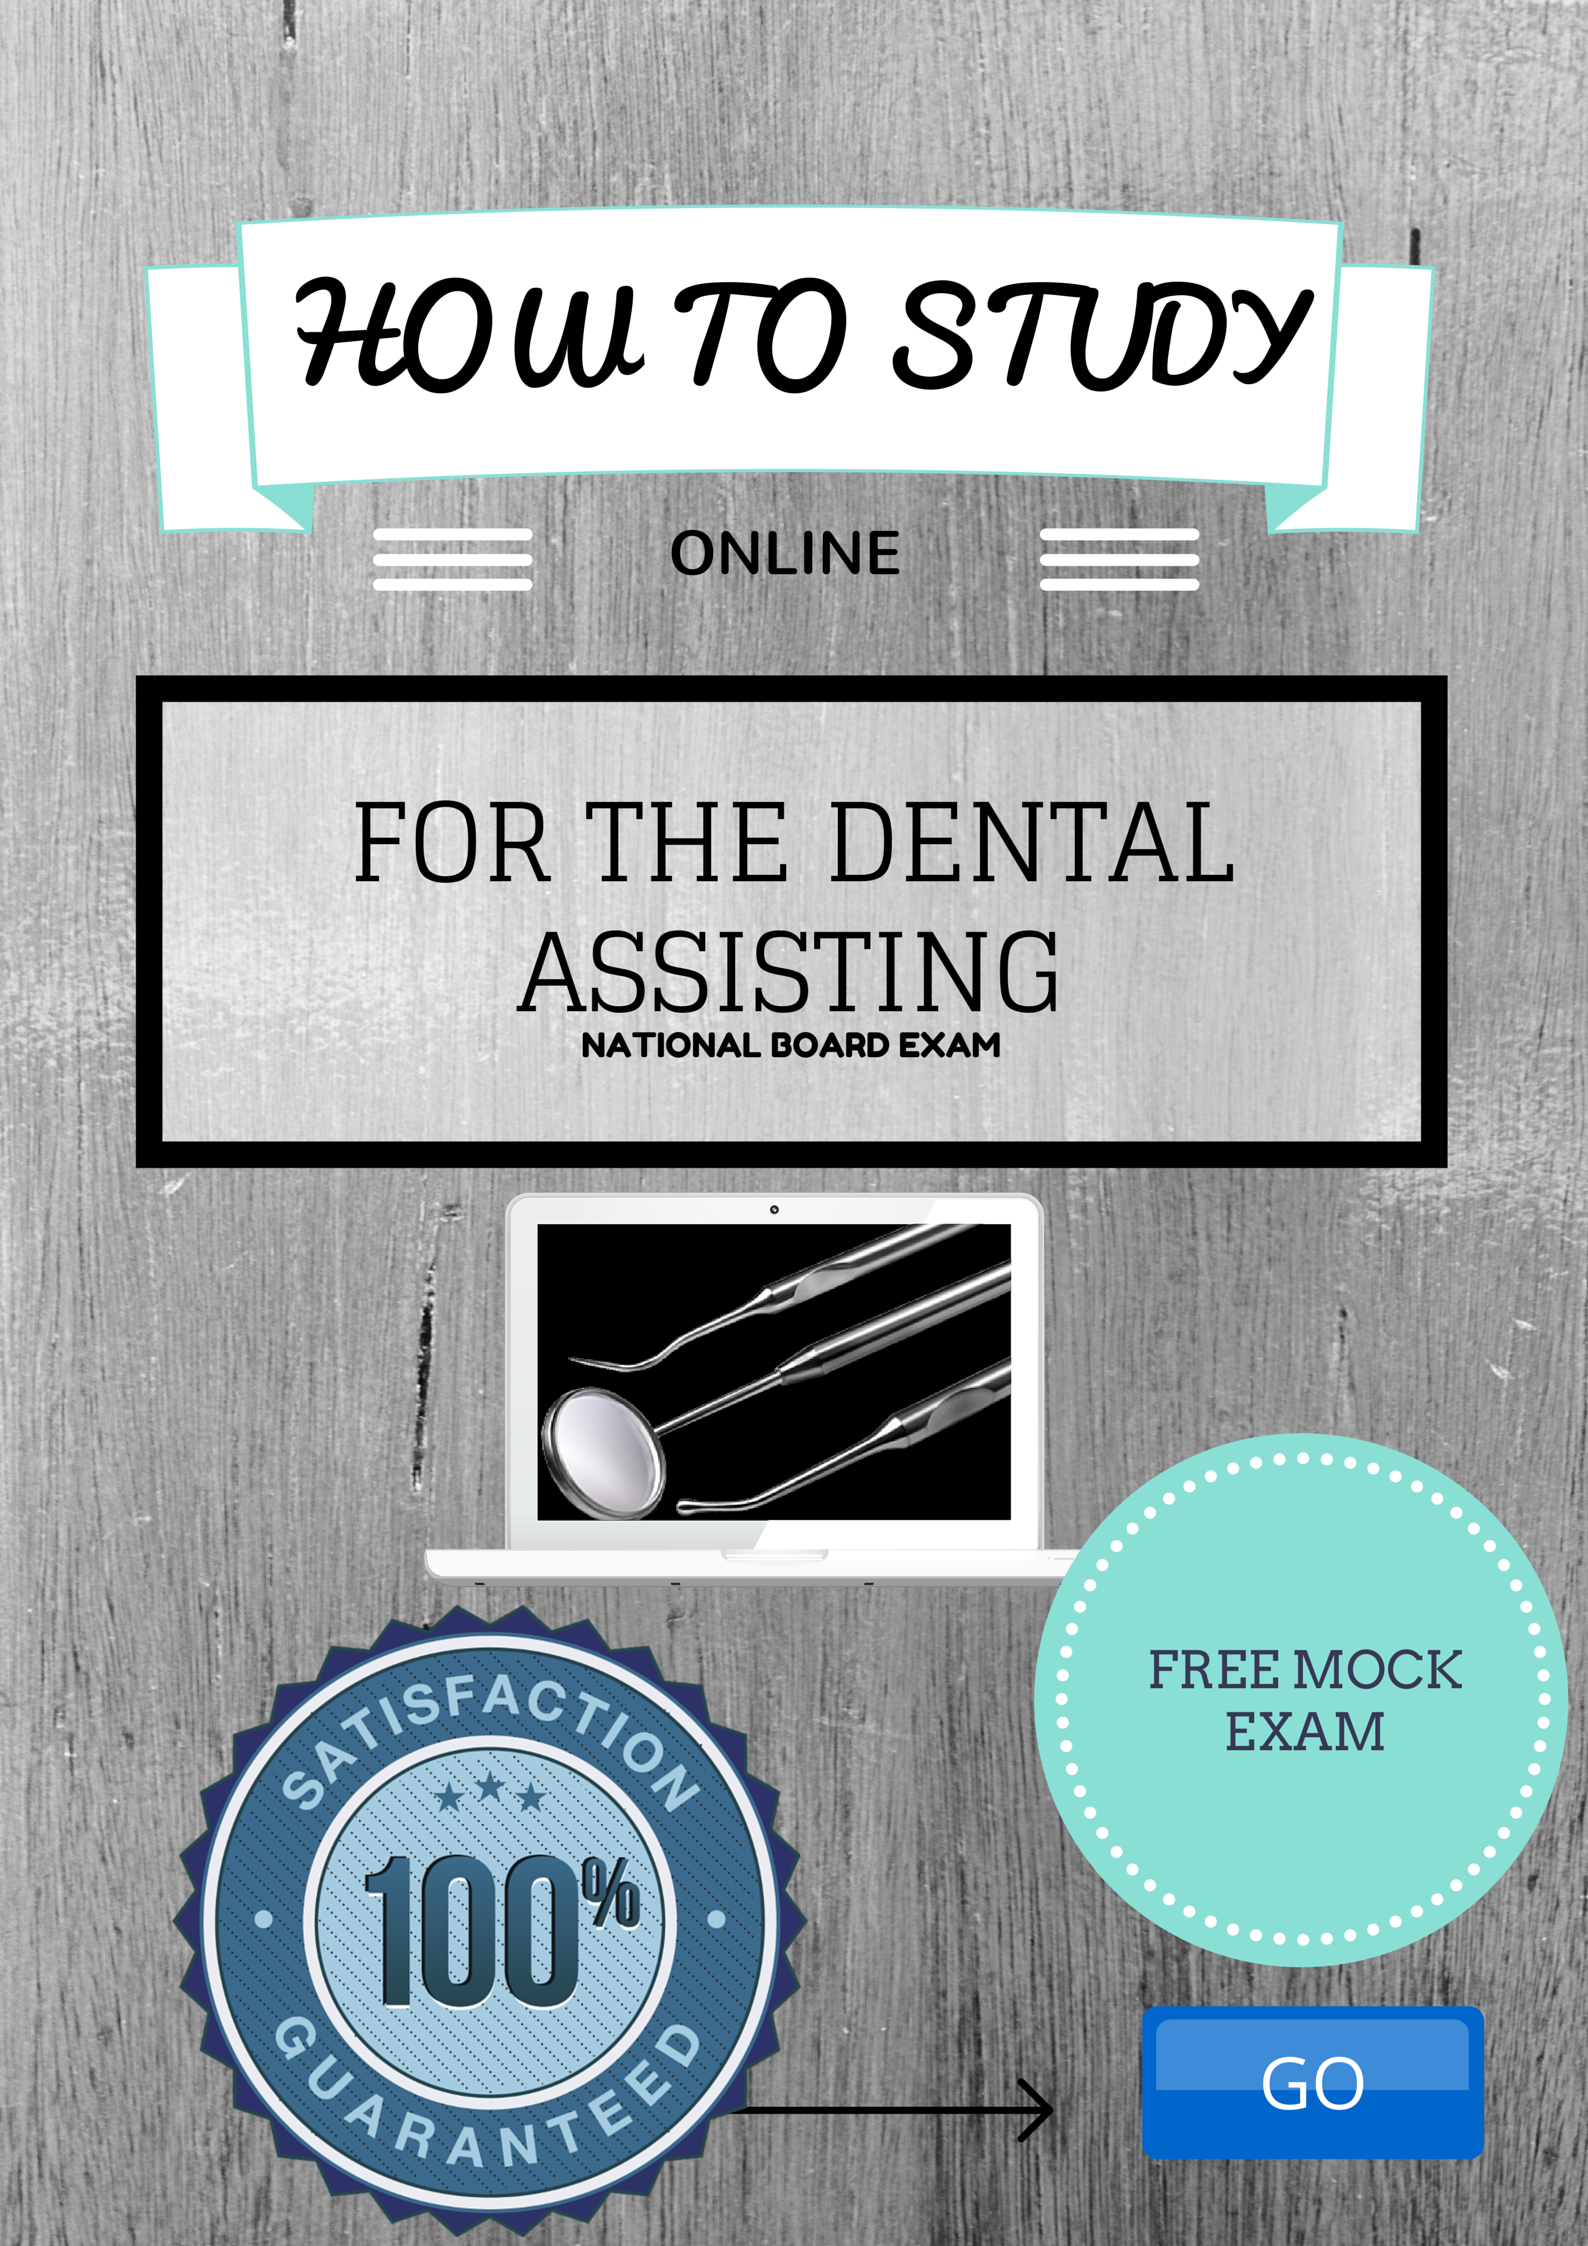 How to pass the national dental assisting board exam easy and how to pass the national dental assisting board exam easy and online malvernweather Choice Image